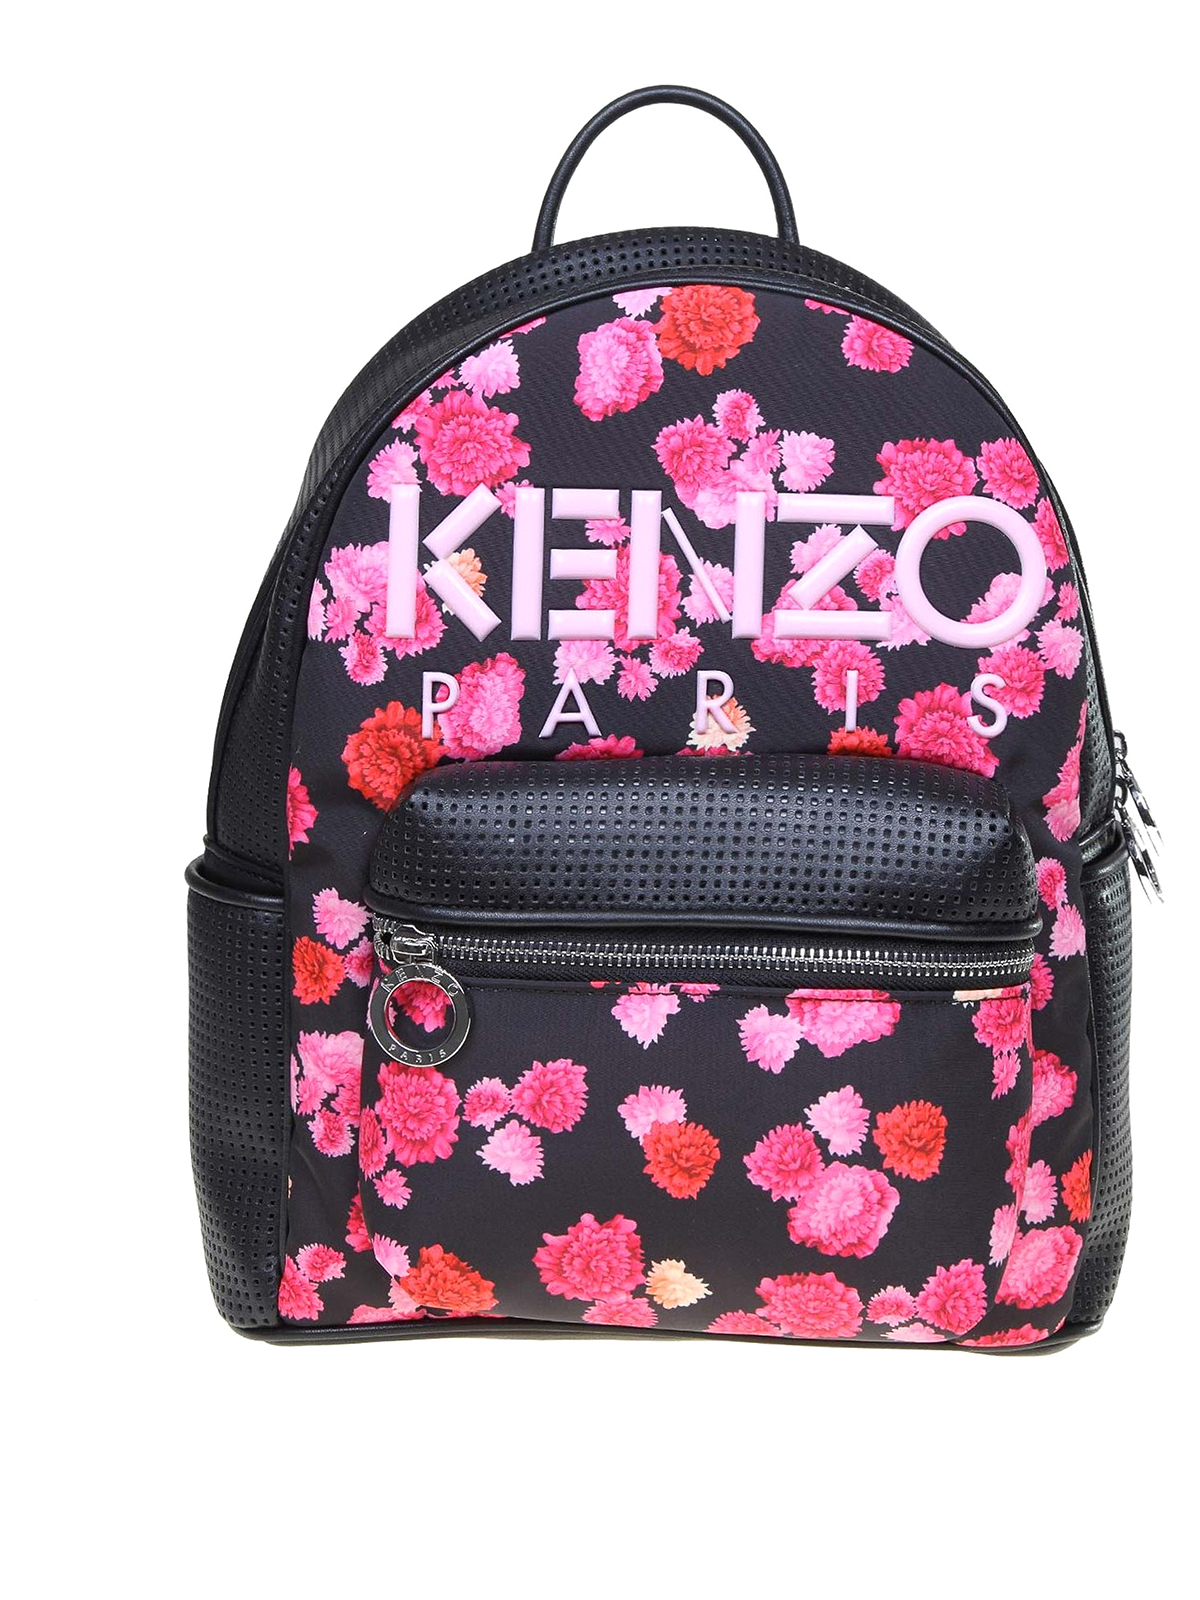 Kenzo Kombo Peonie Perforated Eco Leather Backpack In Black